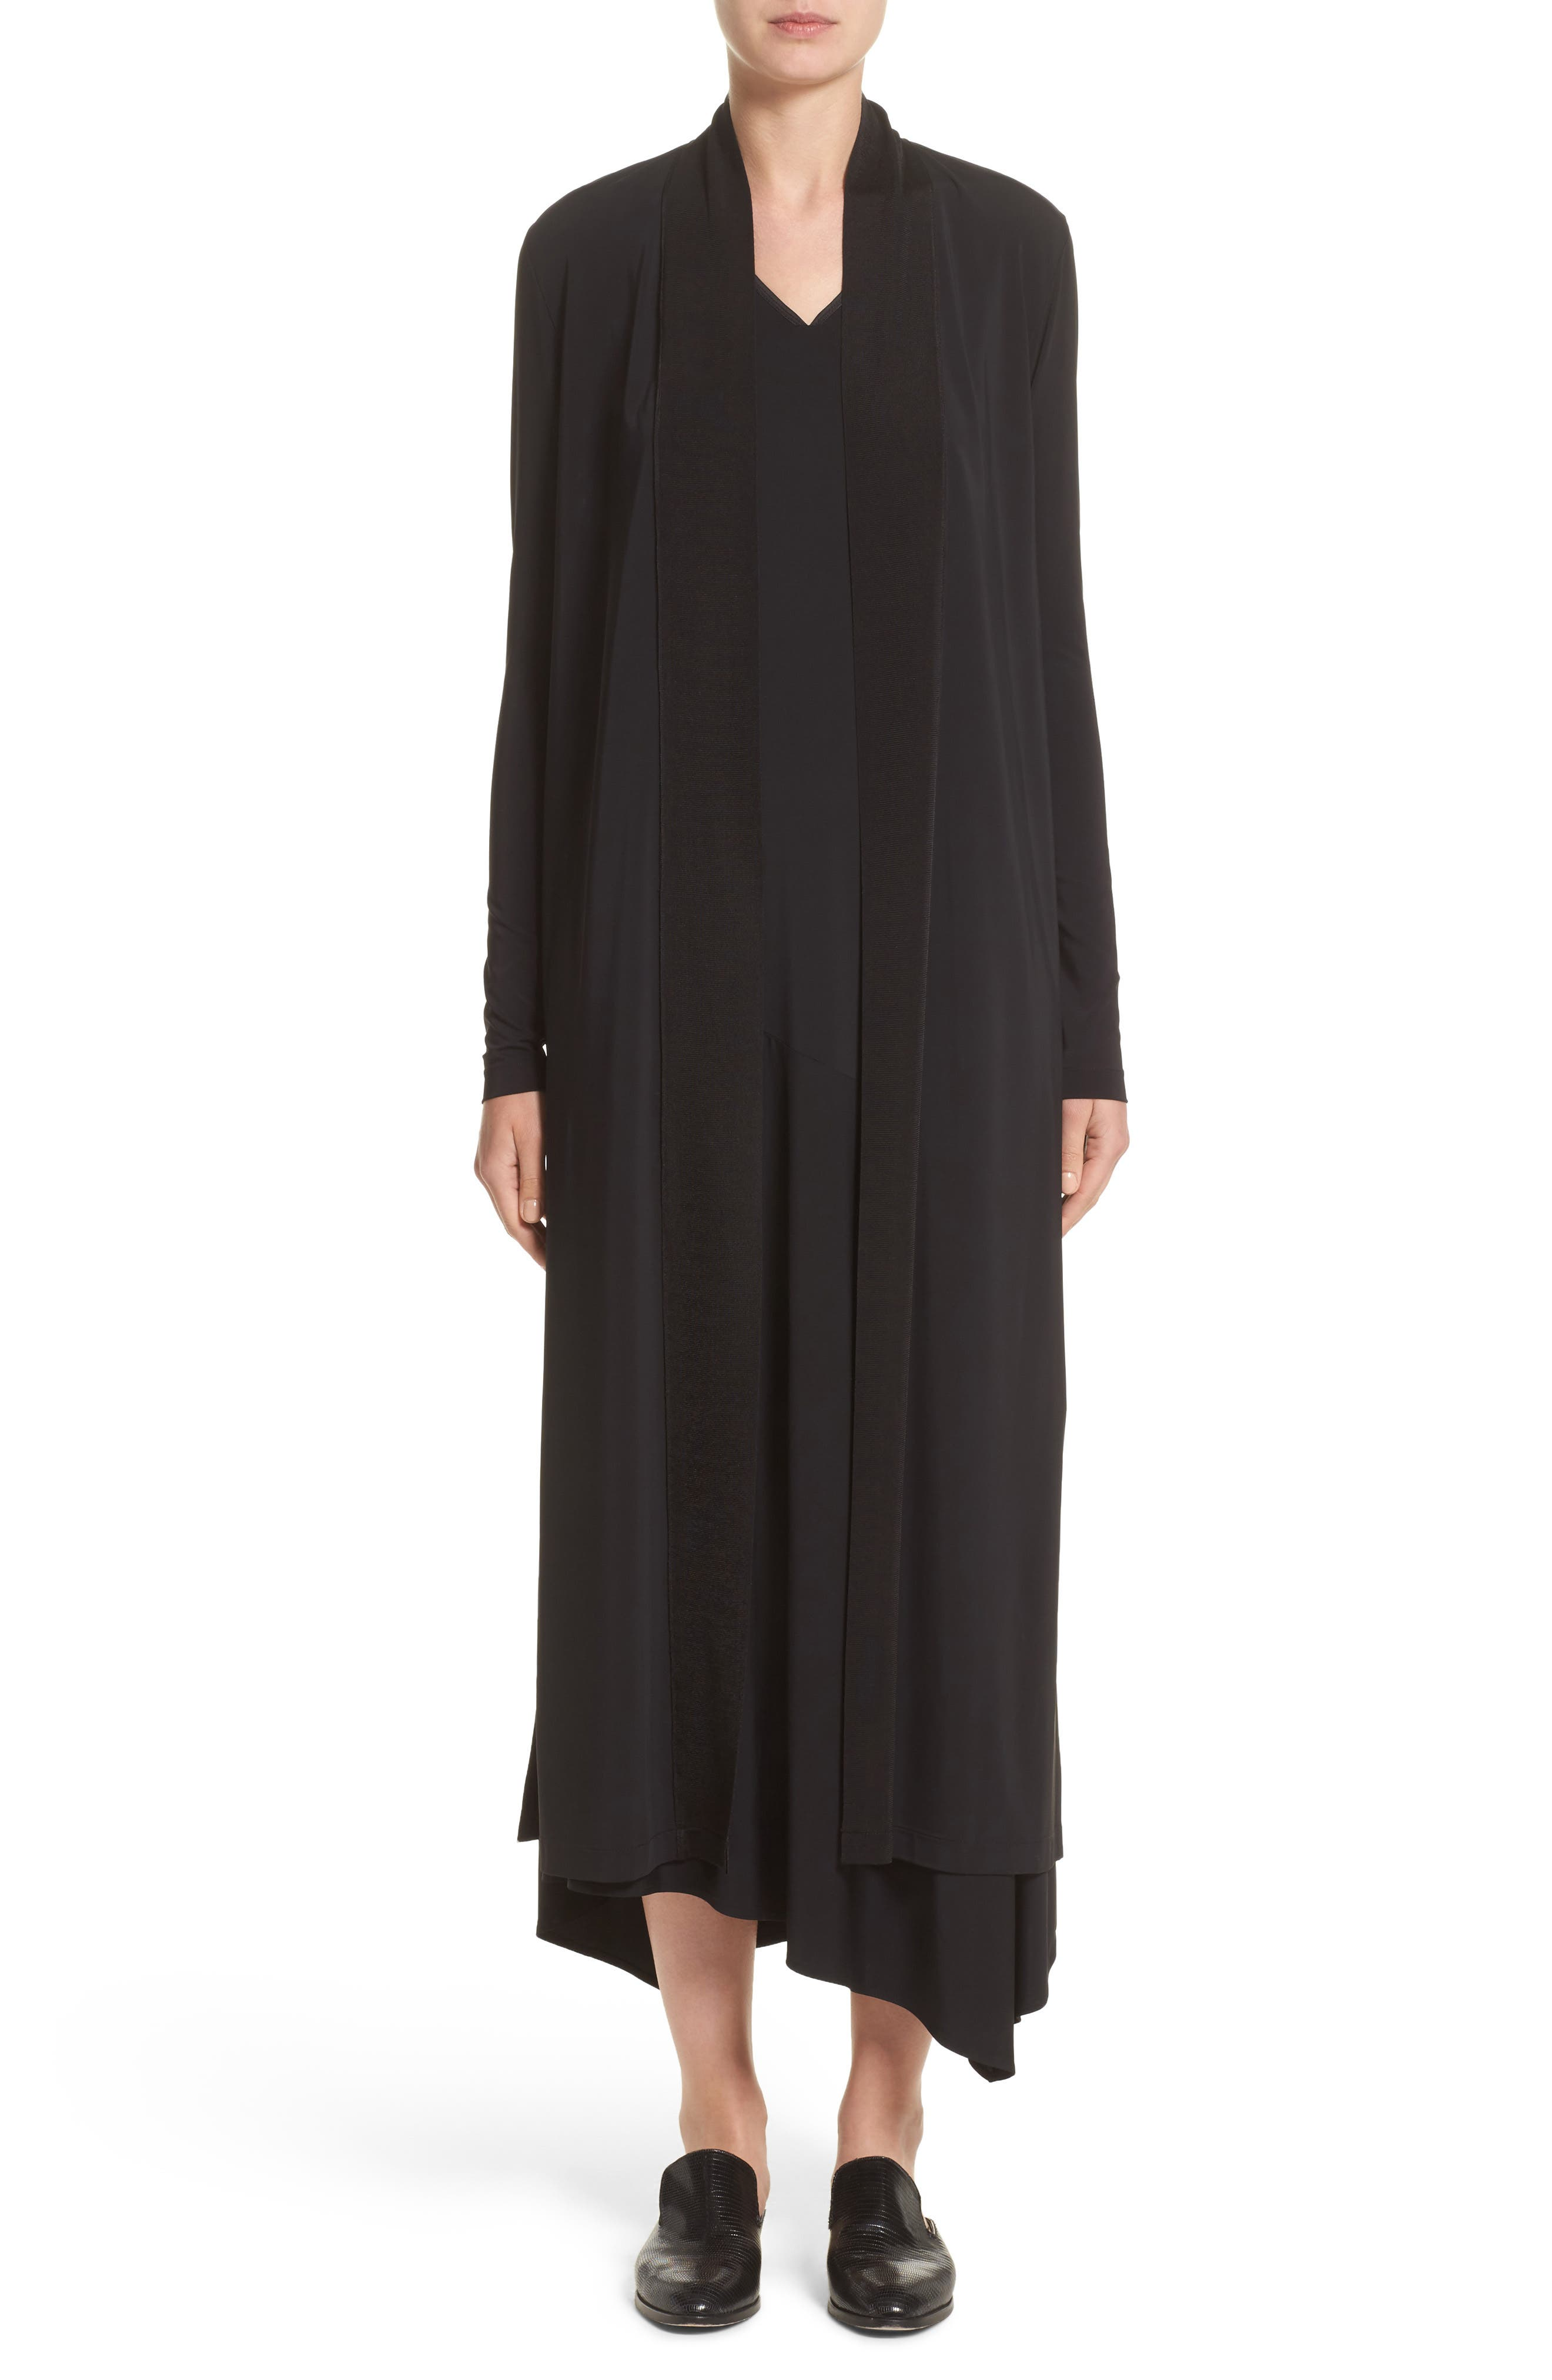 LAFAYETTE 148 NEW YORK Cultivated Crepe Jersey Duster